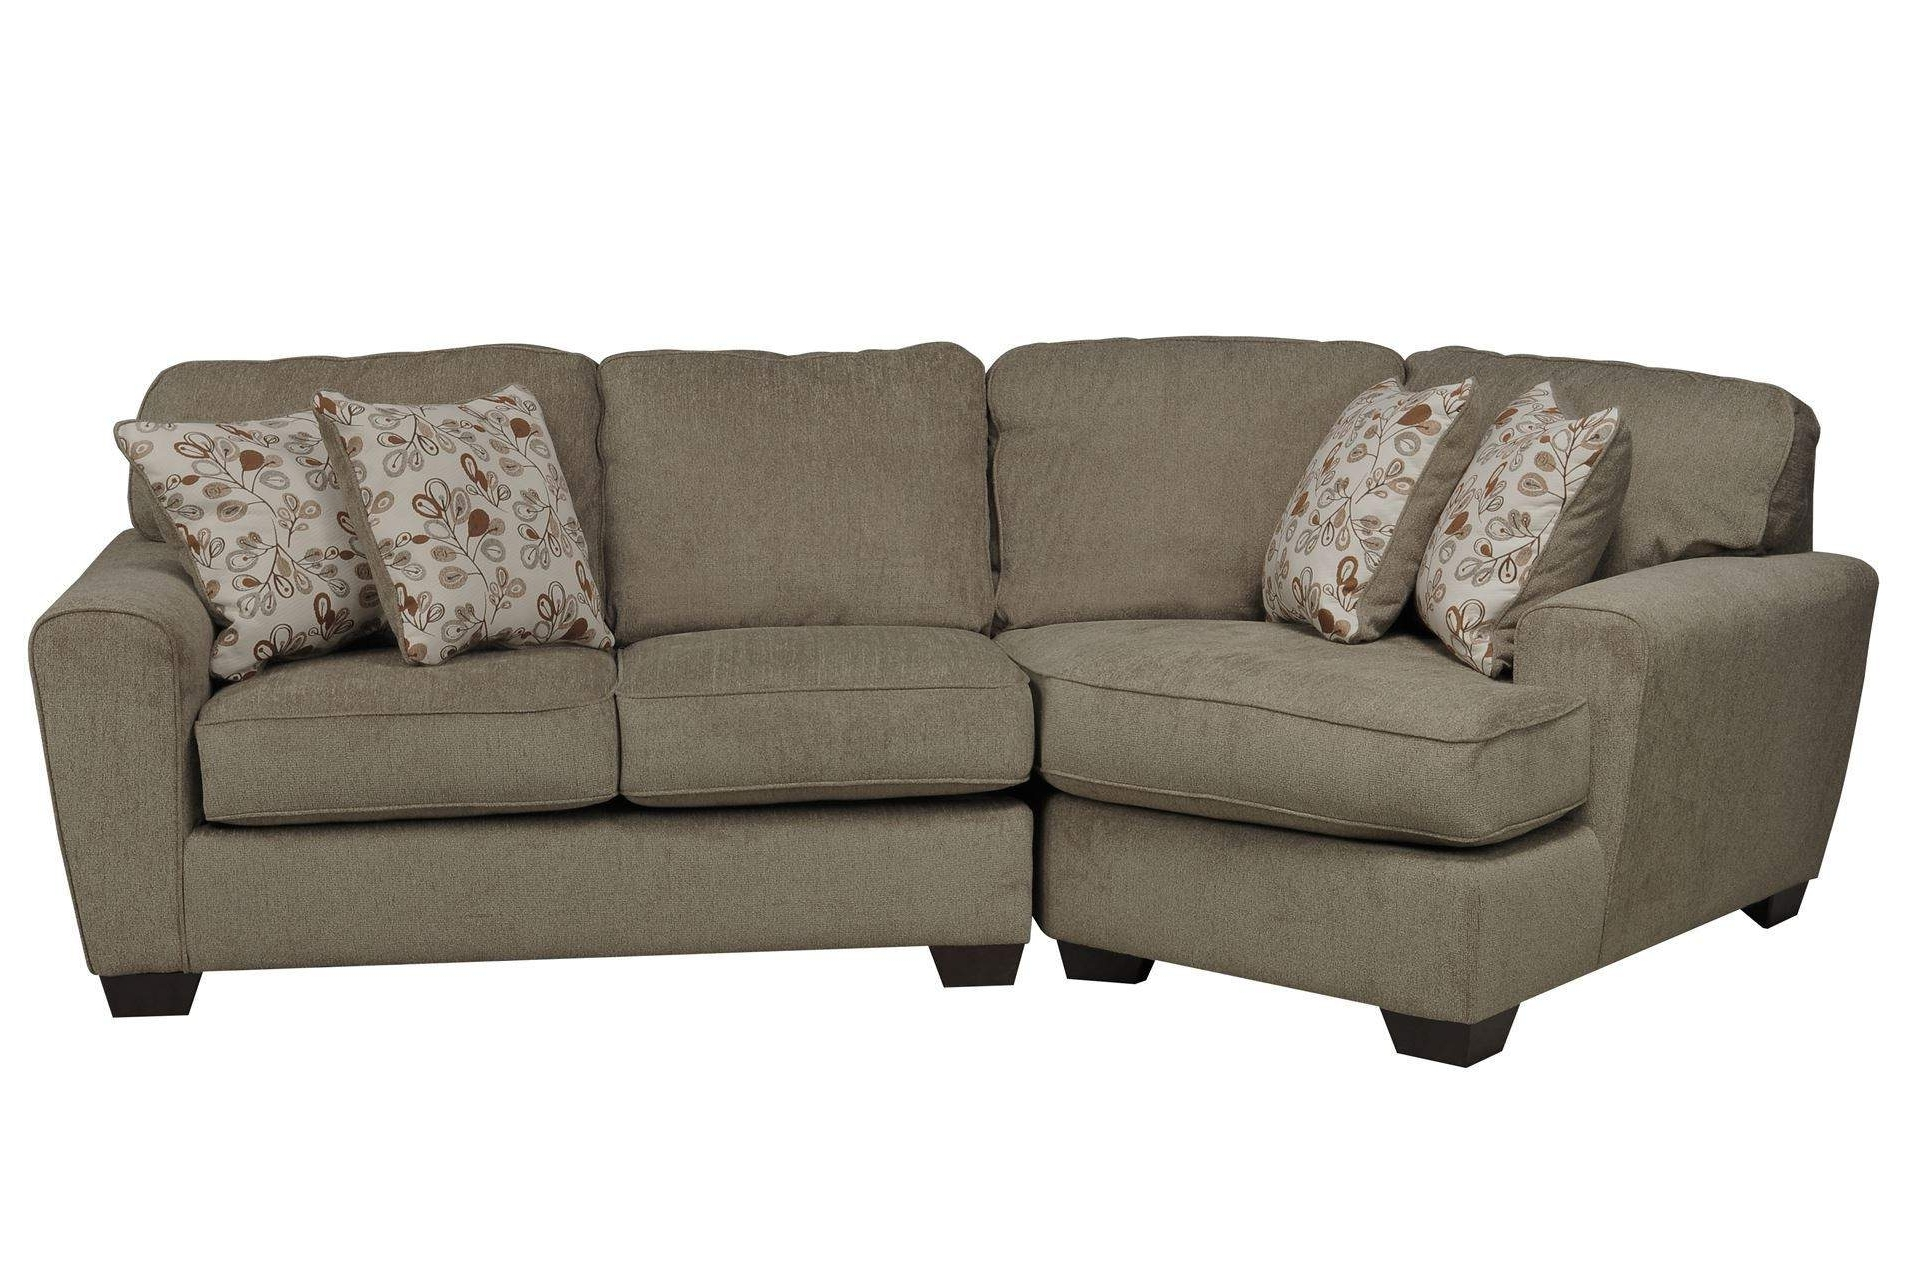 Sectional Sofa With Cuddler Chaise – Nrhcares With Most Popular Sectional Sofas With Cuddler Chaise (View 8 of 15)